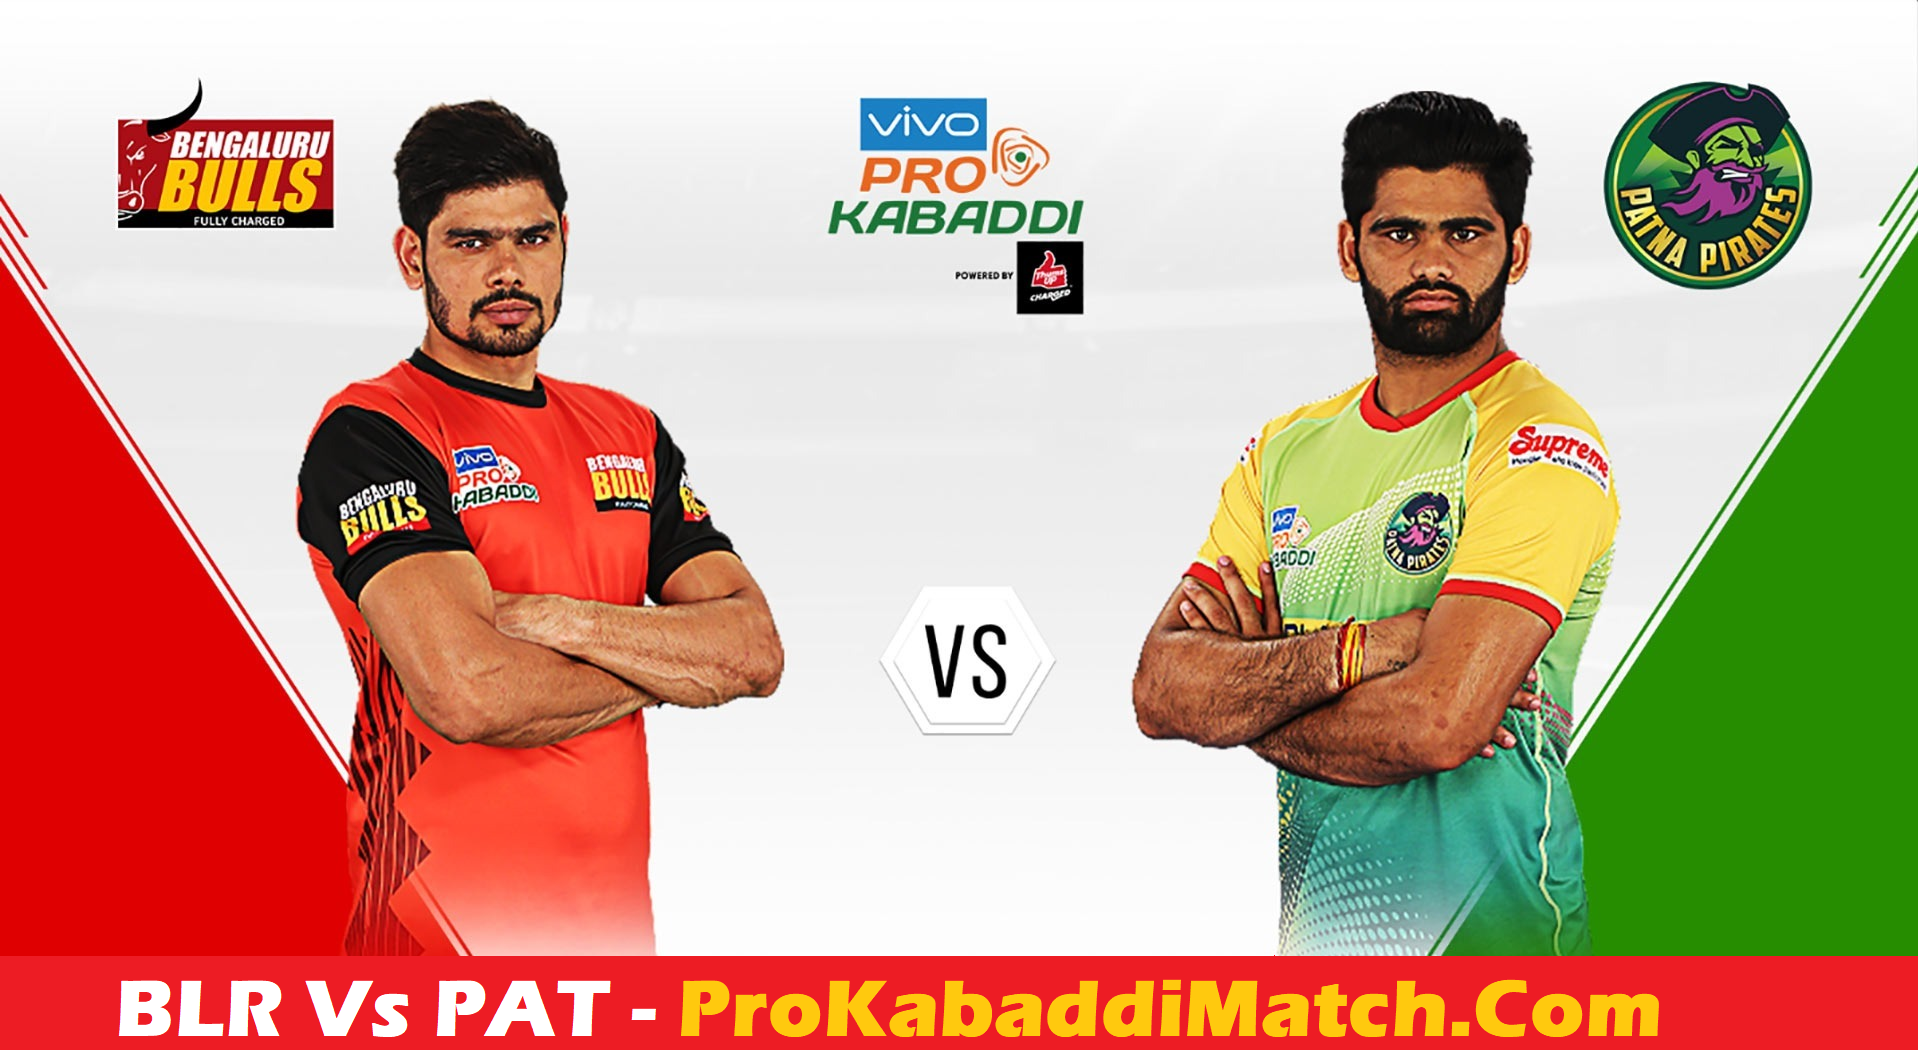 Benguluru Bulls Vs Patna Pirates PKL 2019 Dream11 – Preview